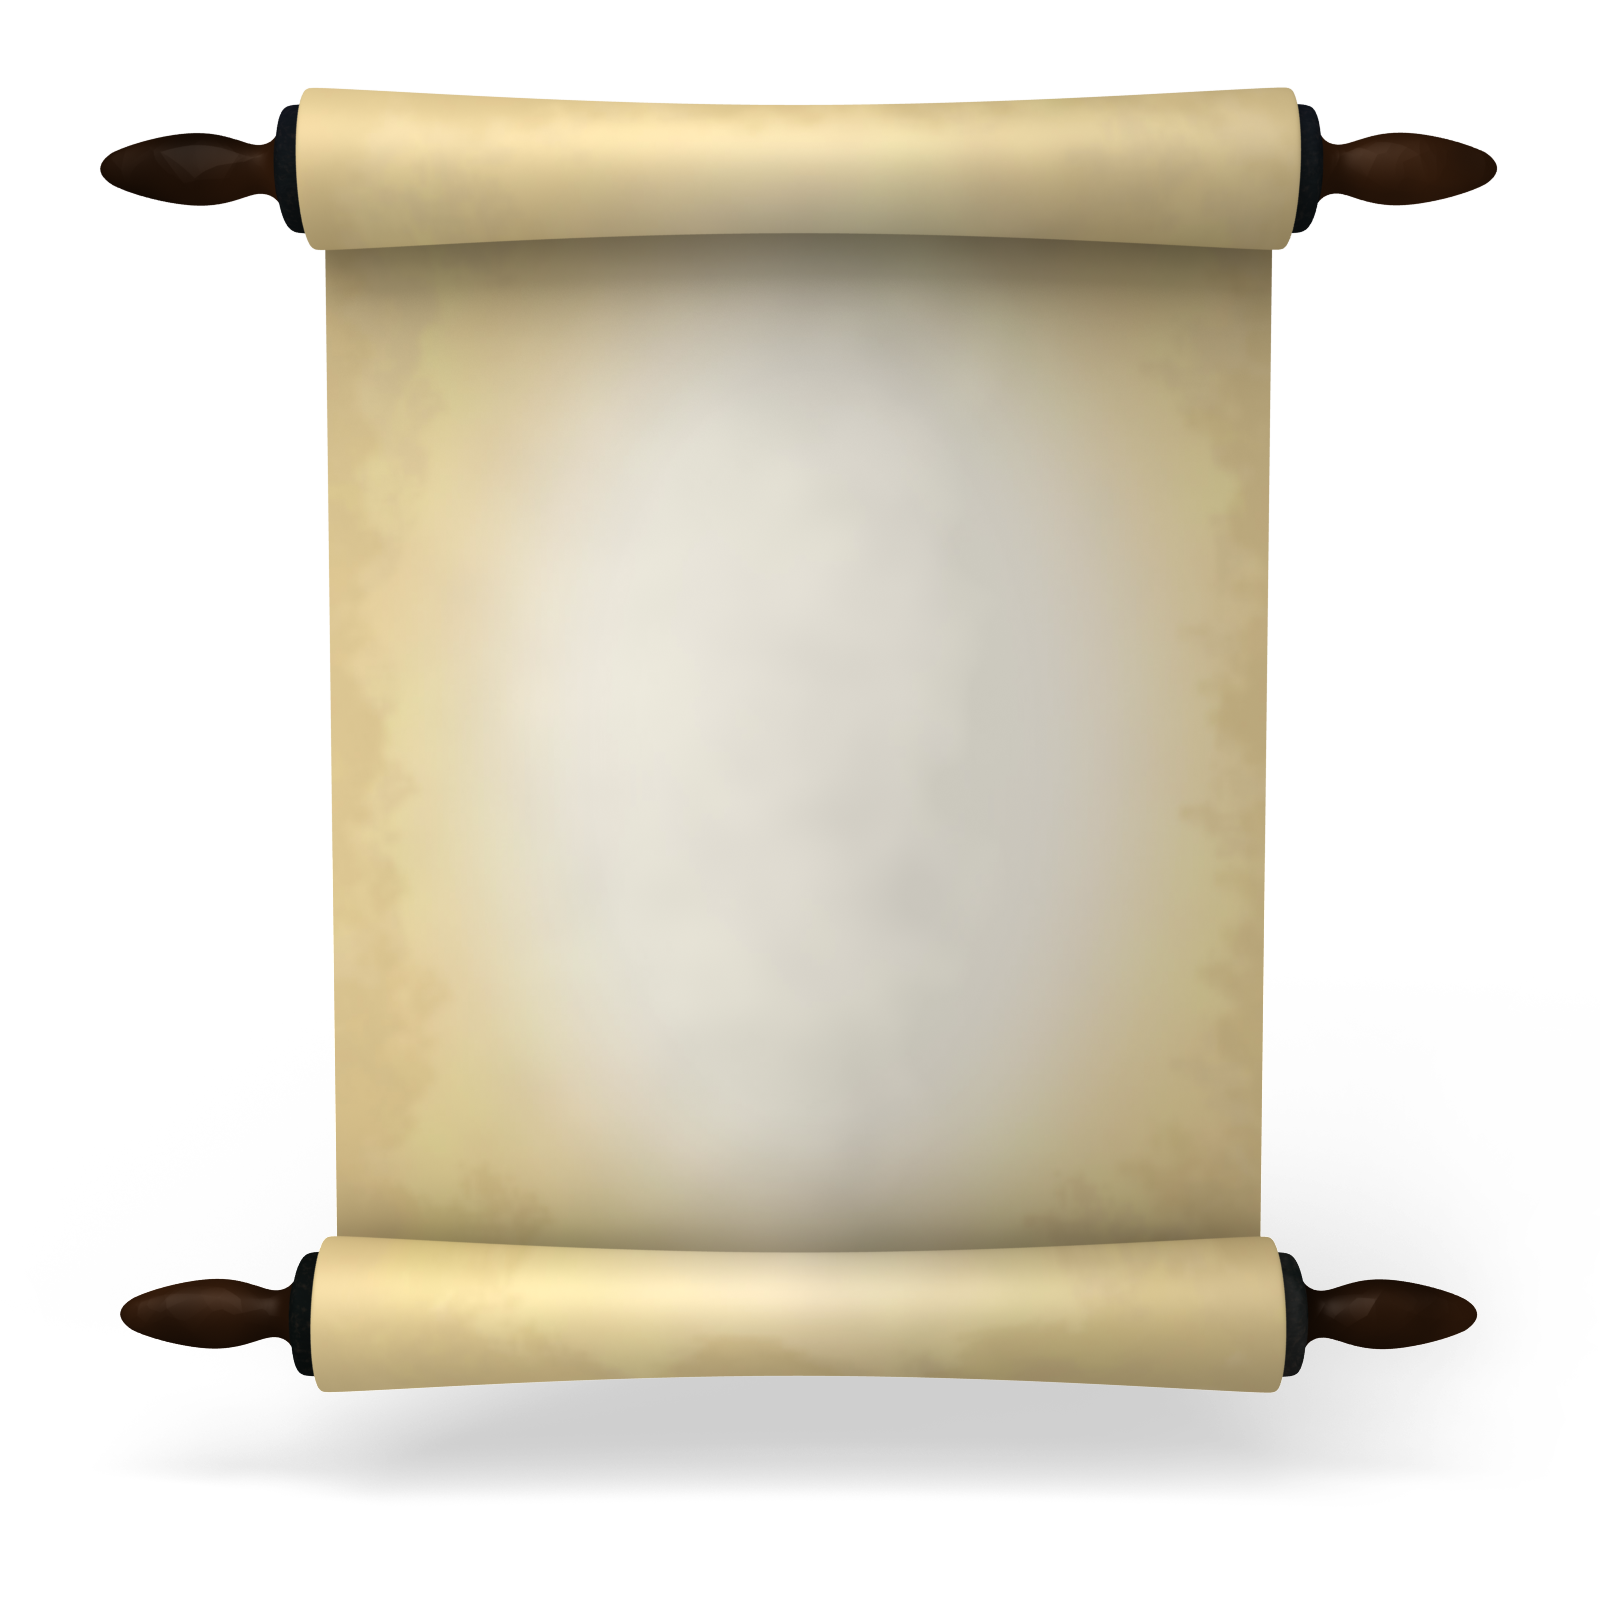 royalty free download Ancient Scroll Paper